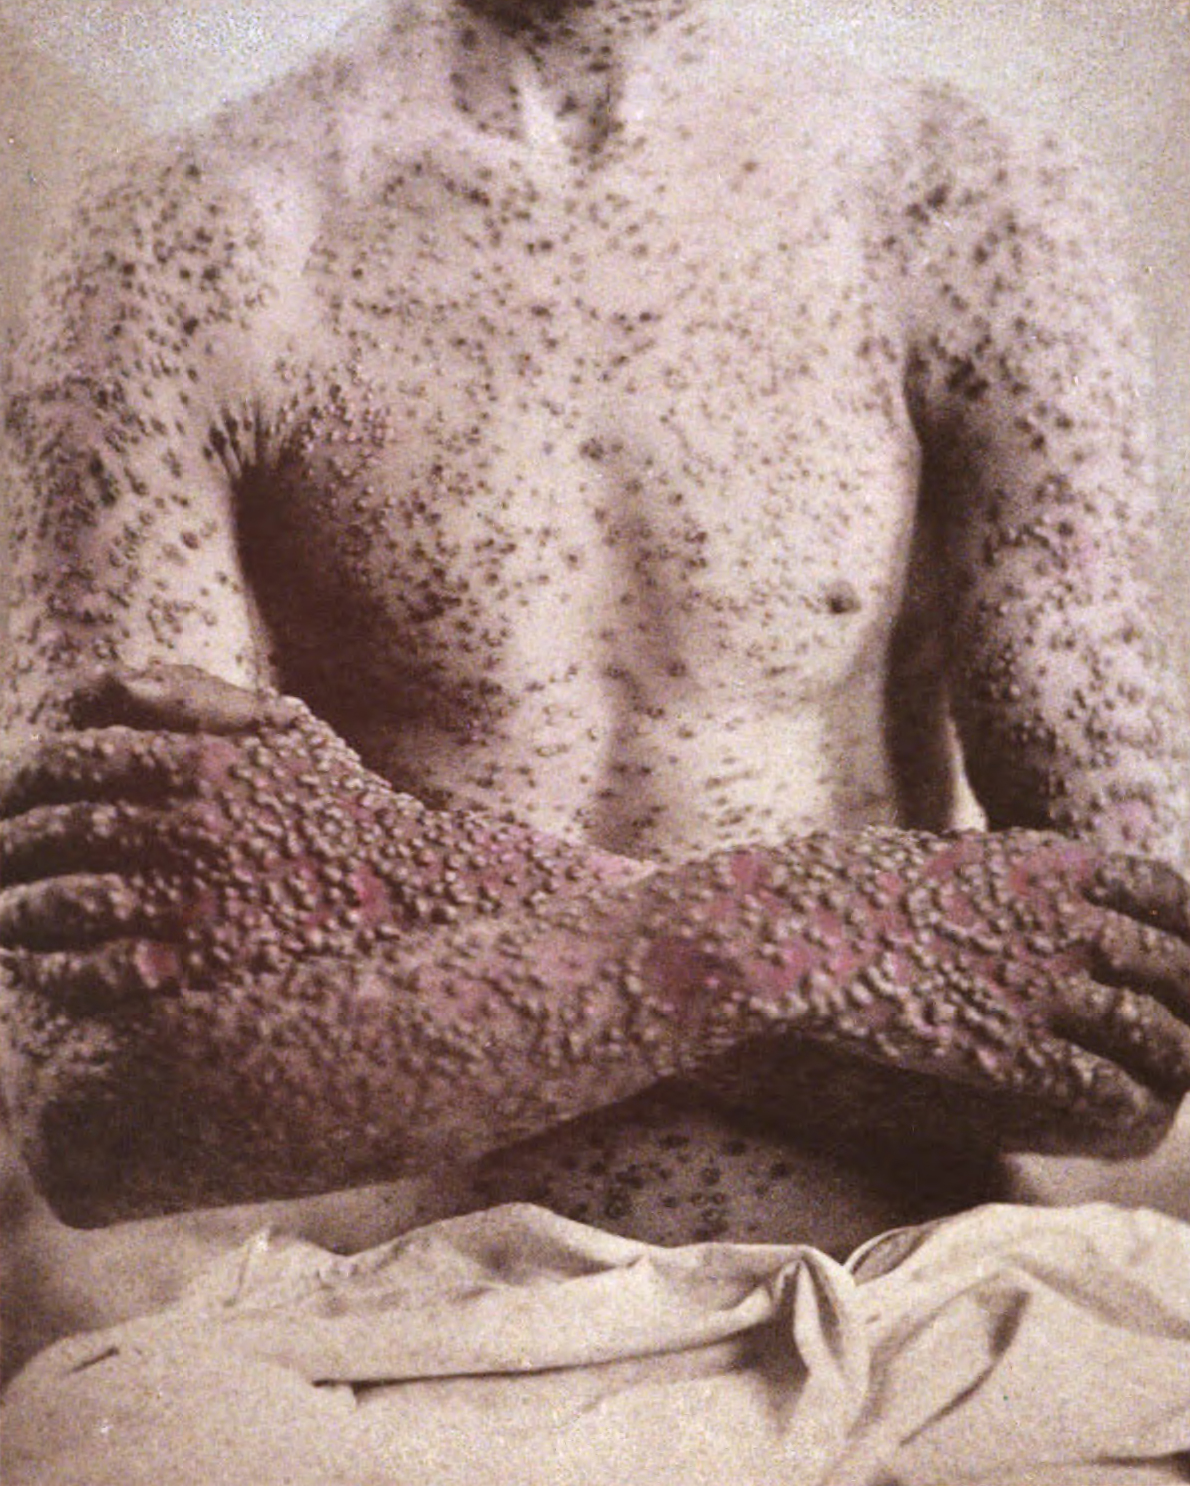 Smallpox - Infectious Dis. - Medbullets Step 2/3